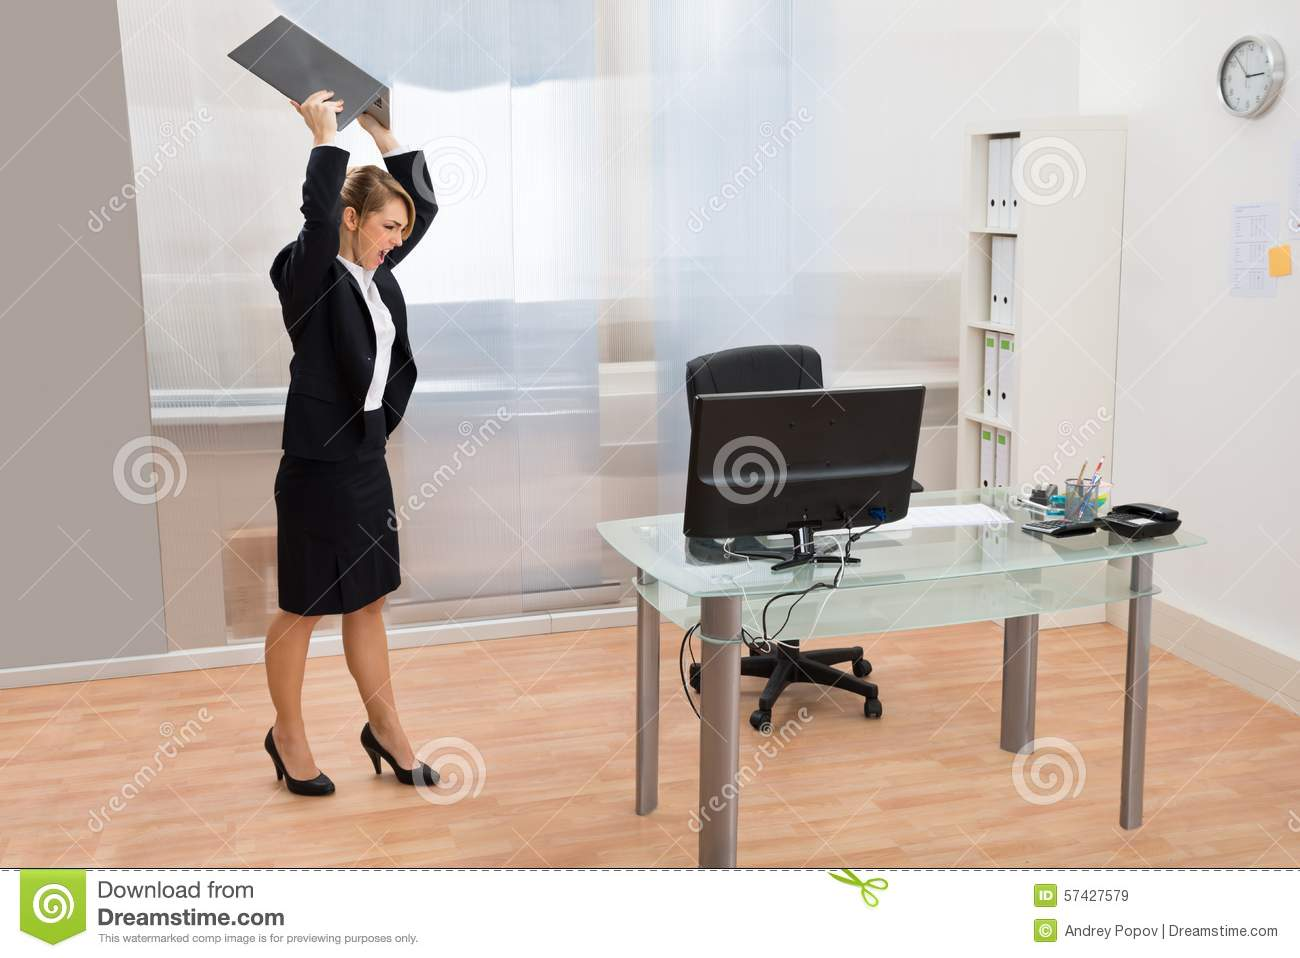 desk chair modern office arm slipcovers angry businesswoman throwing laptop stock photo - image: 57427579